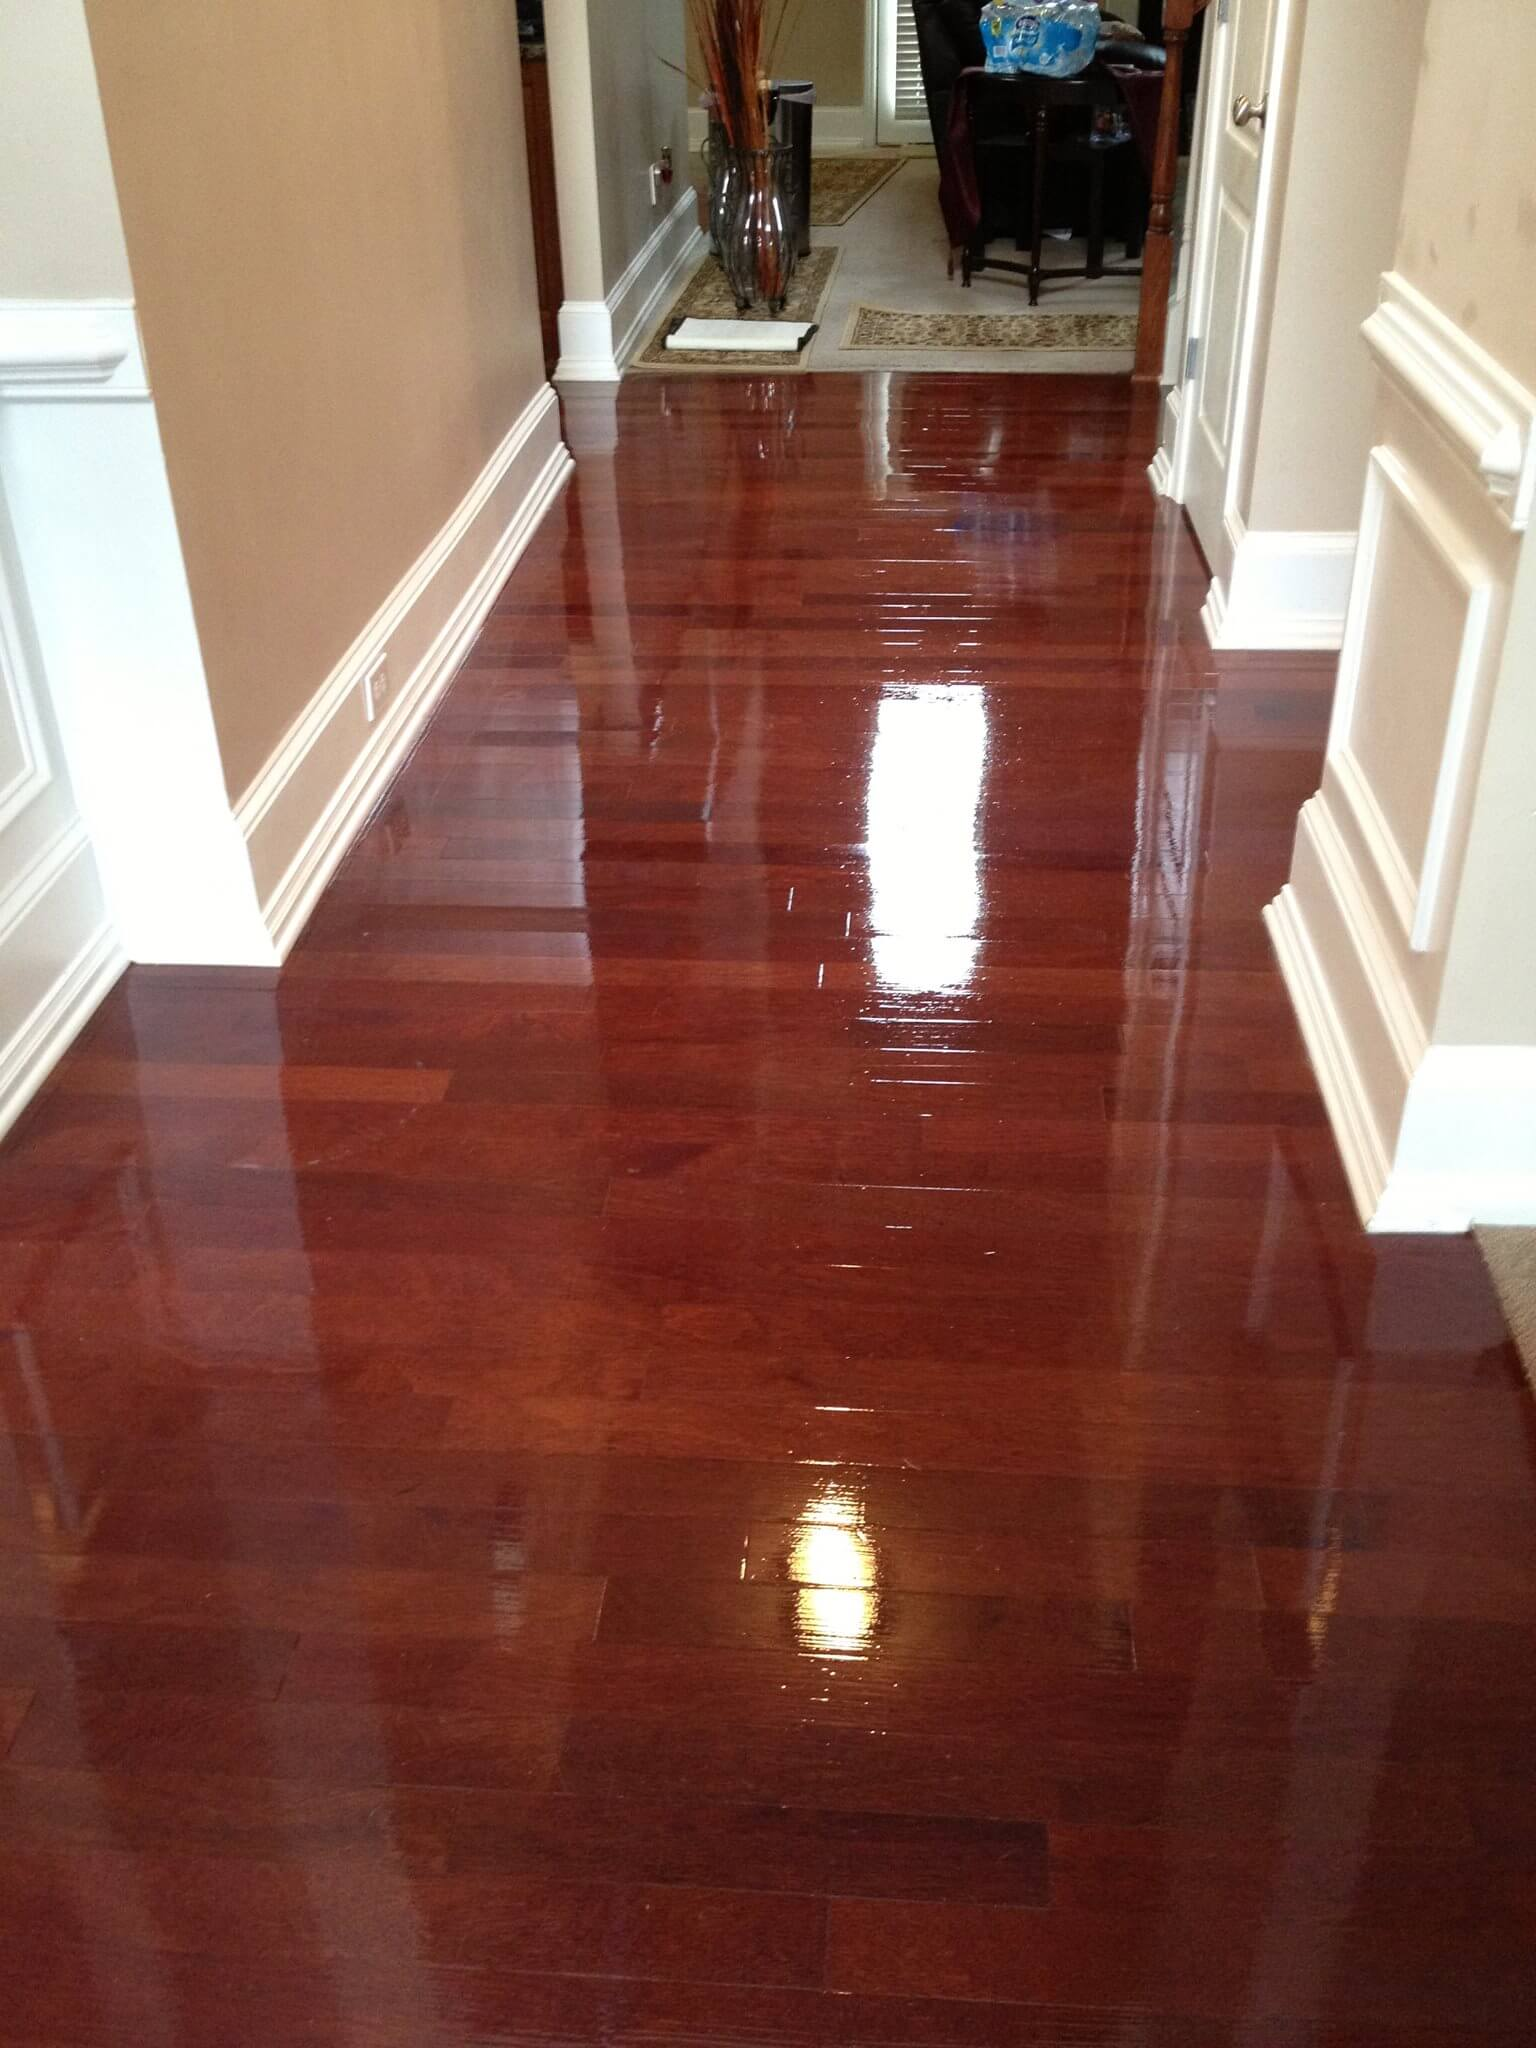 a refinished and shining hardwood floor